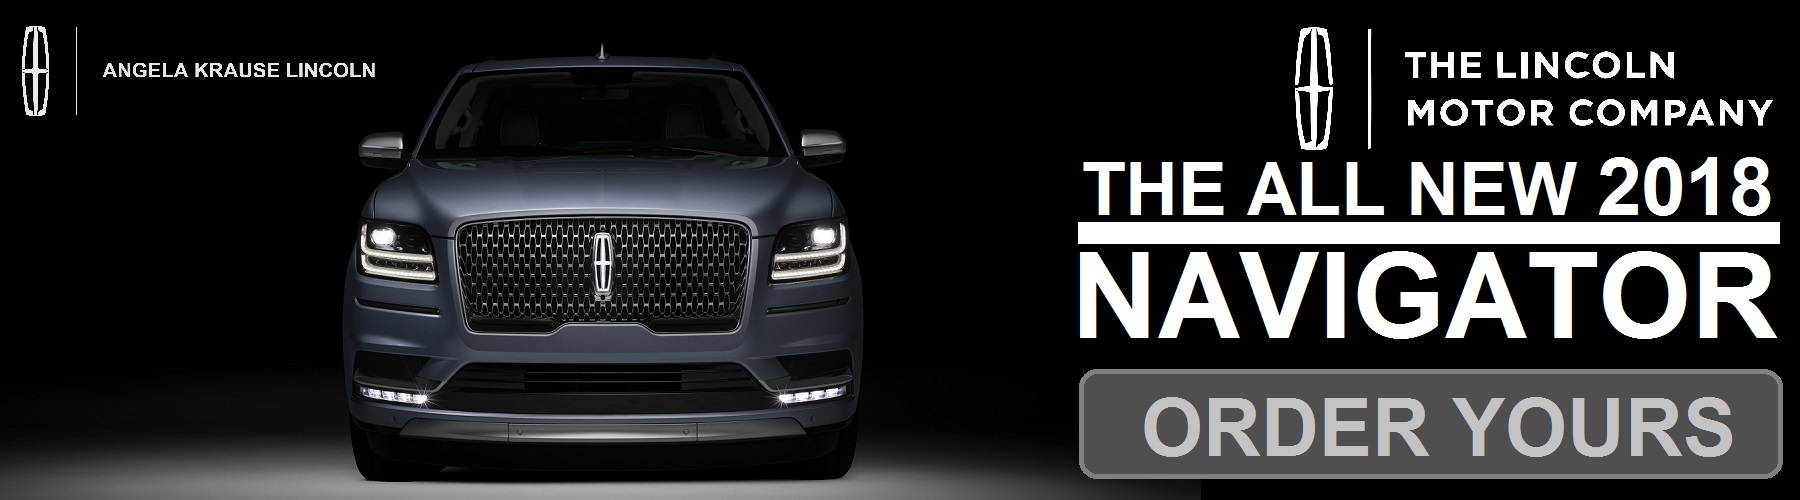 Test Drive The All New 2018 Lincoln Navigator